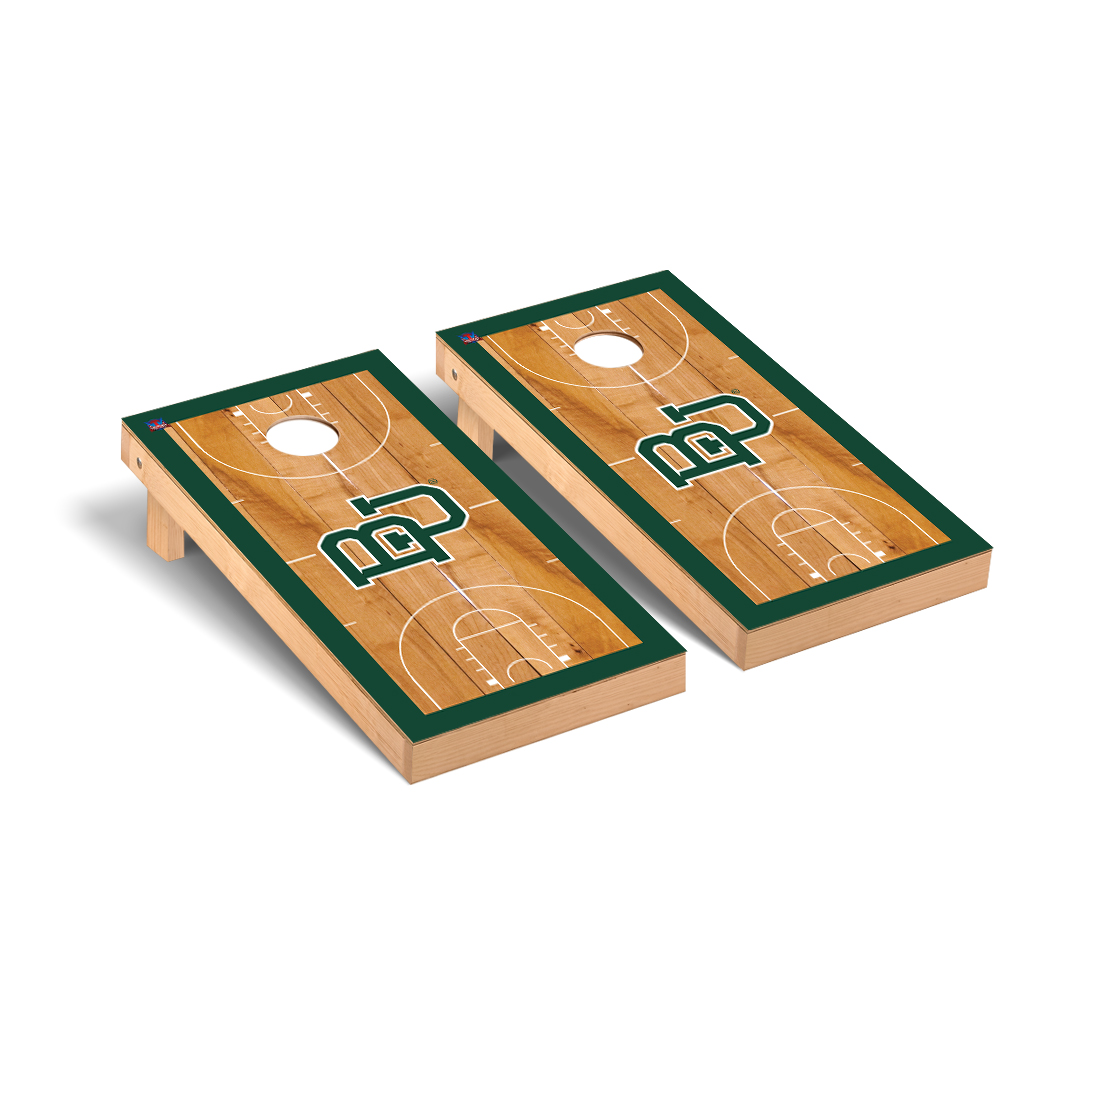 Baylor Bears Cornhole Game Set Basketball Court Version